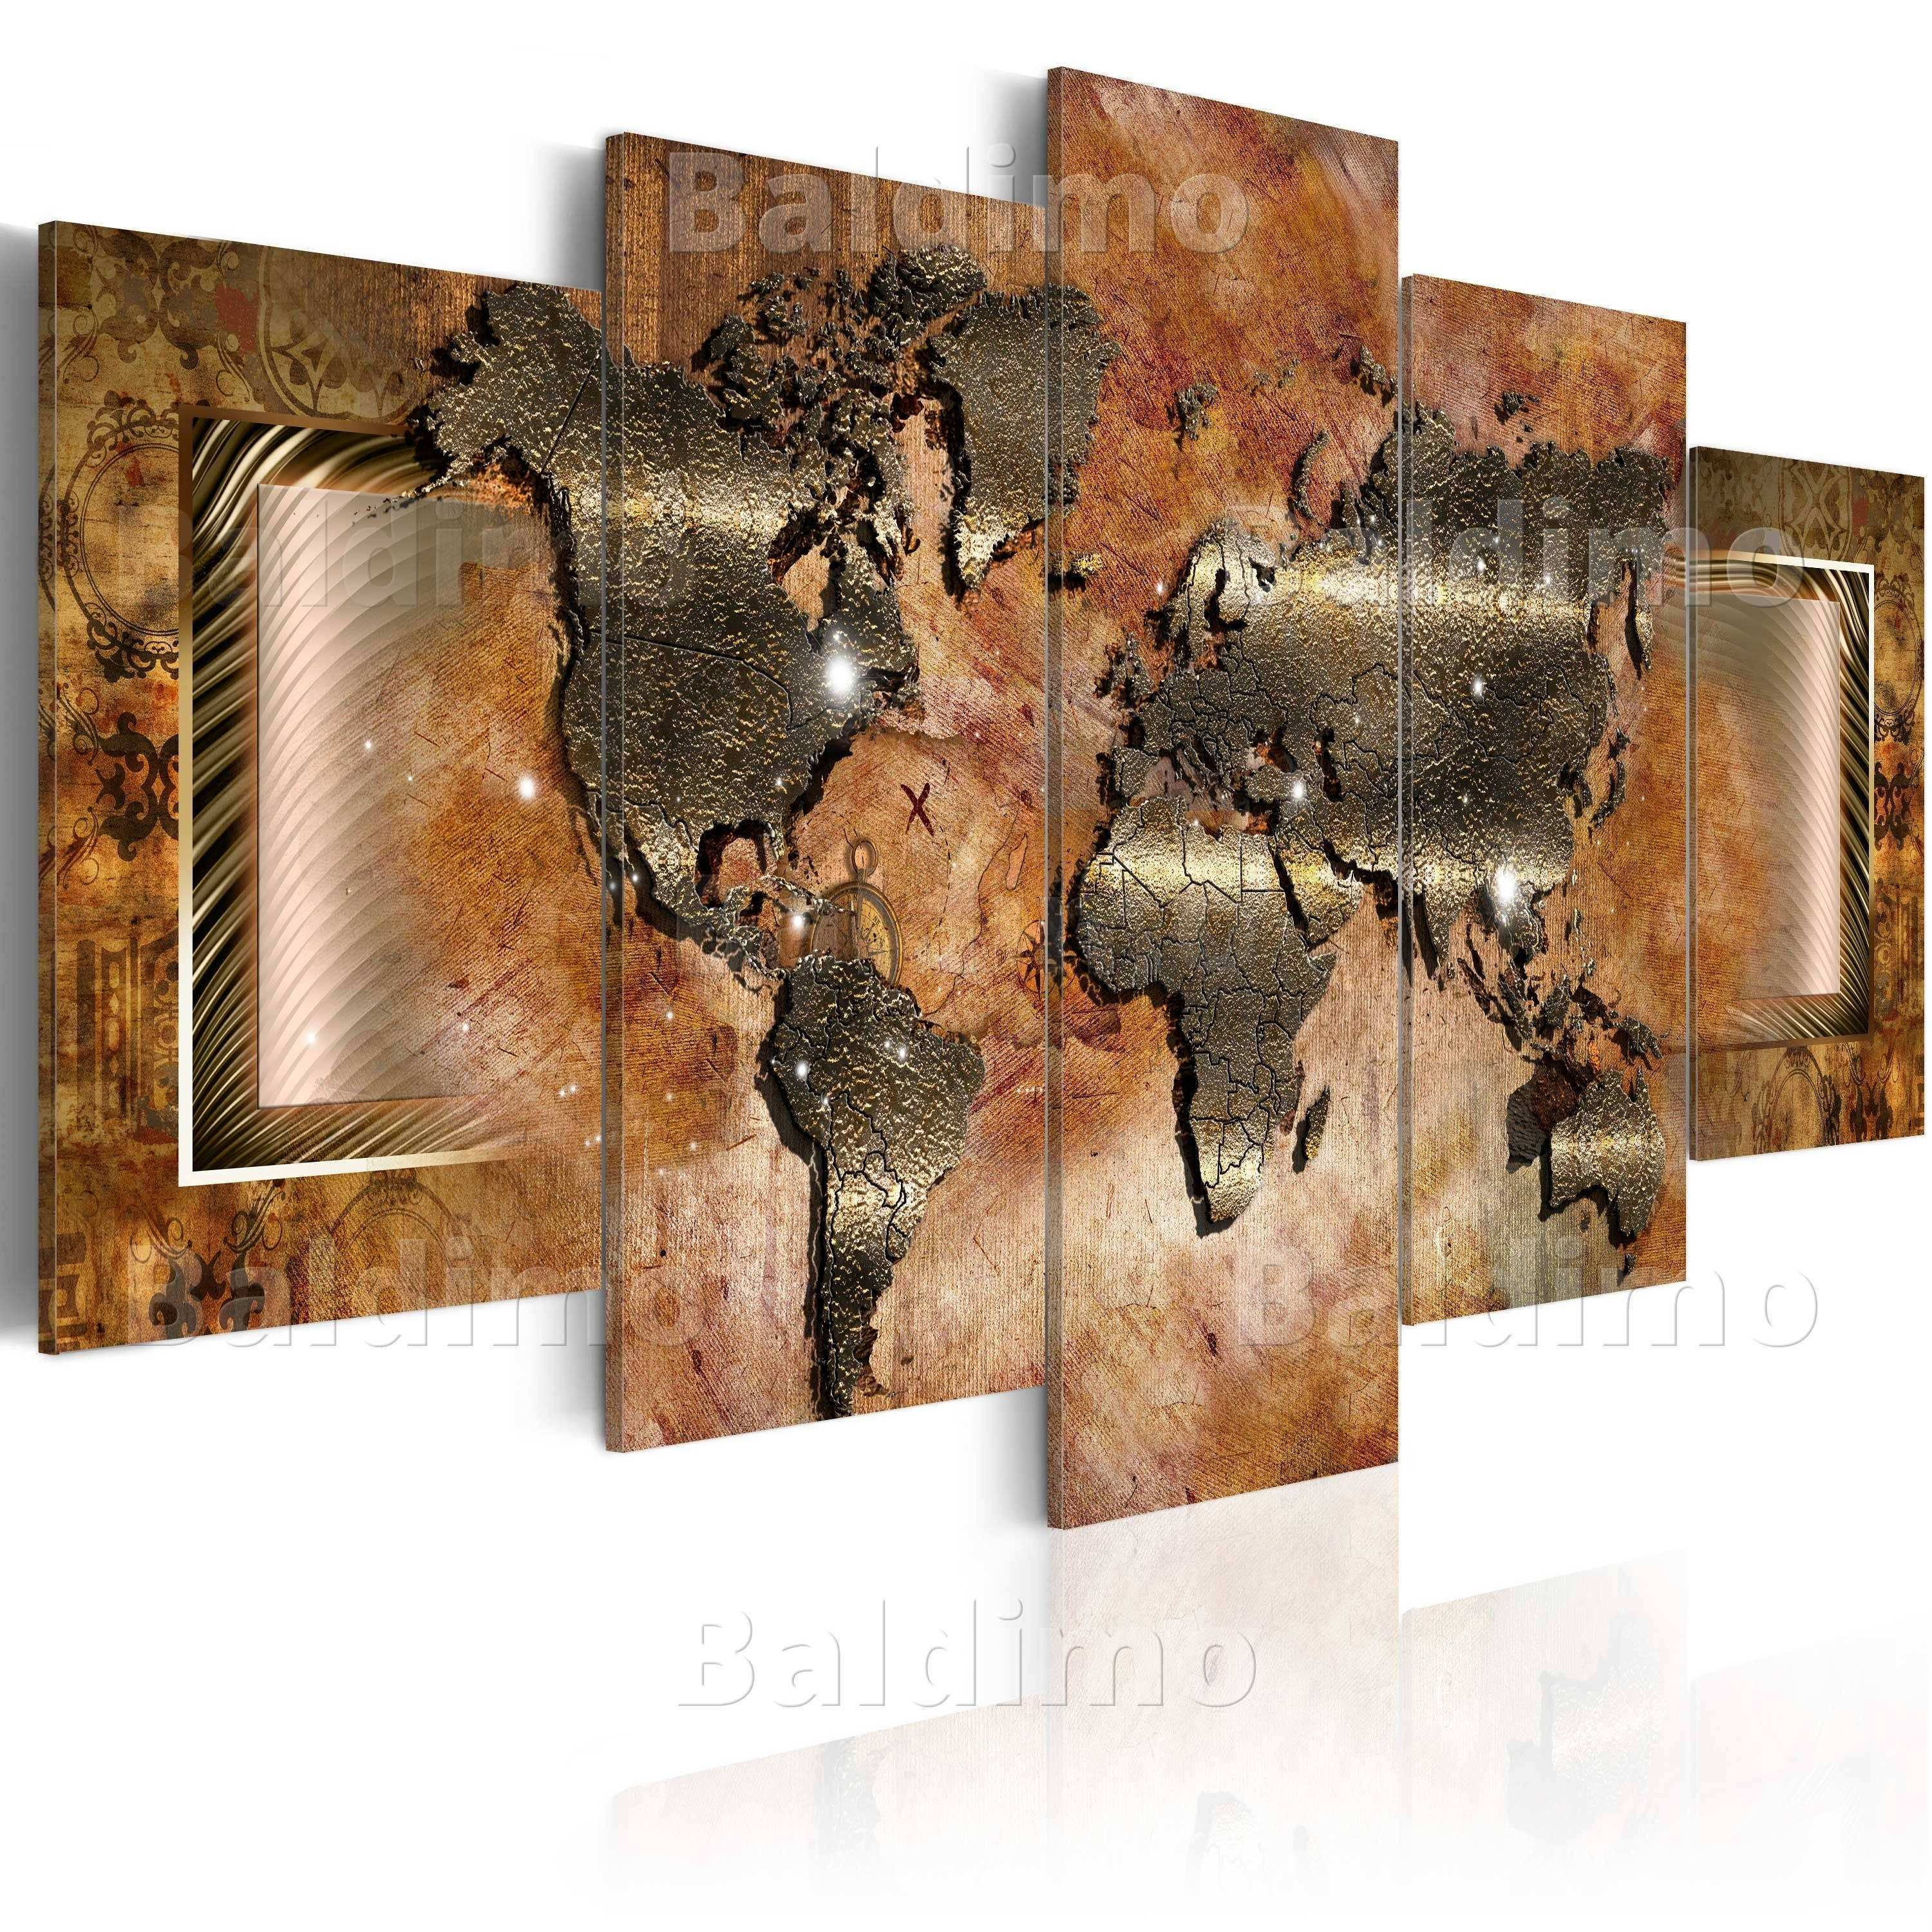 s of World Map Wall Art Canvas Showing 3 of 20 s